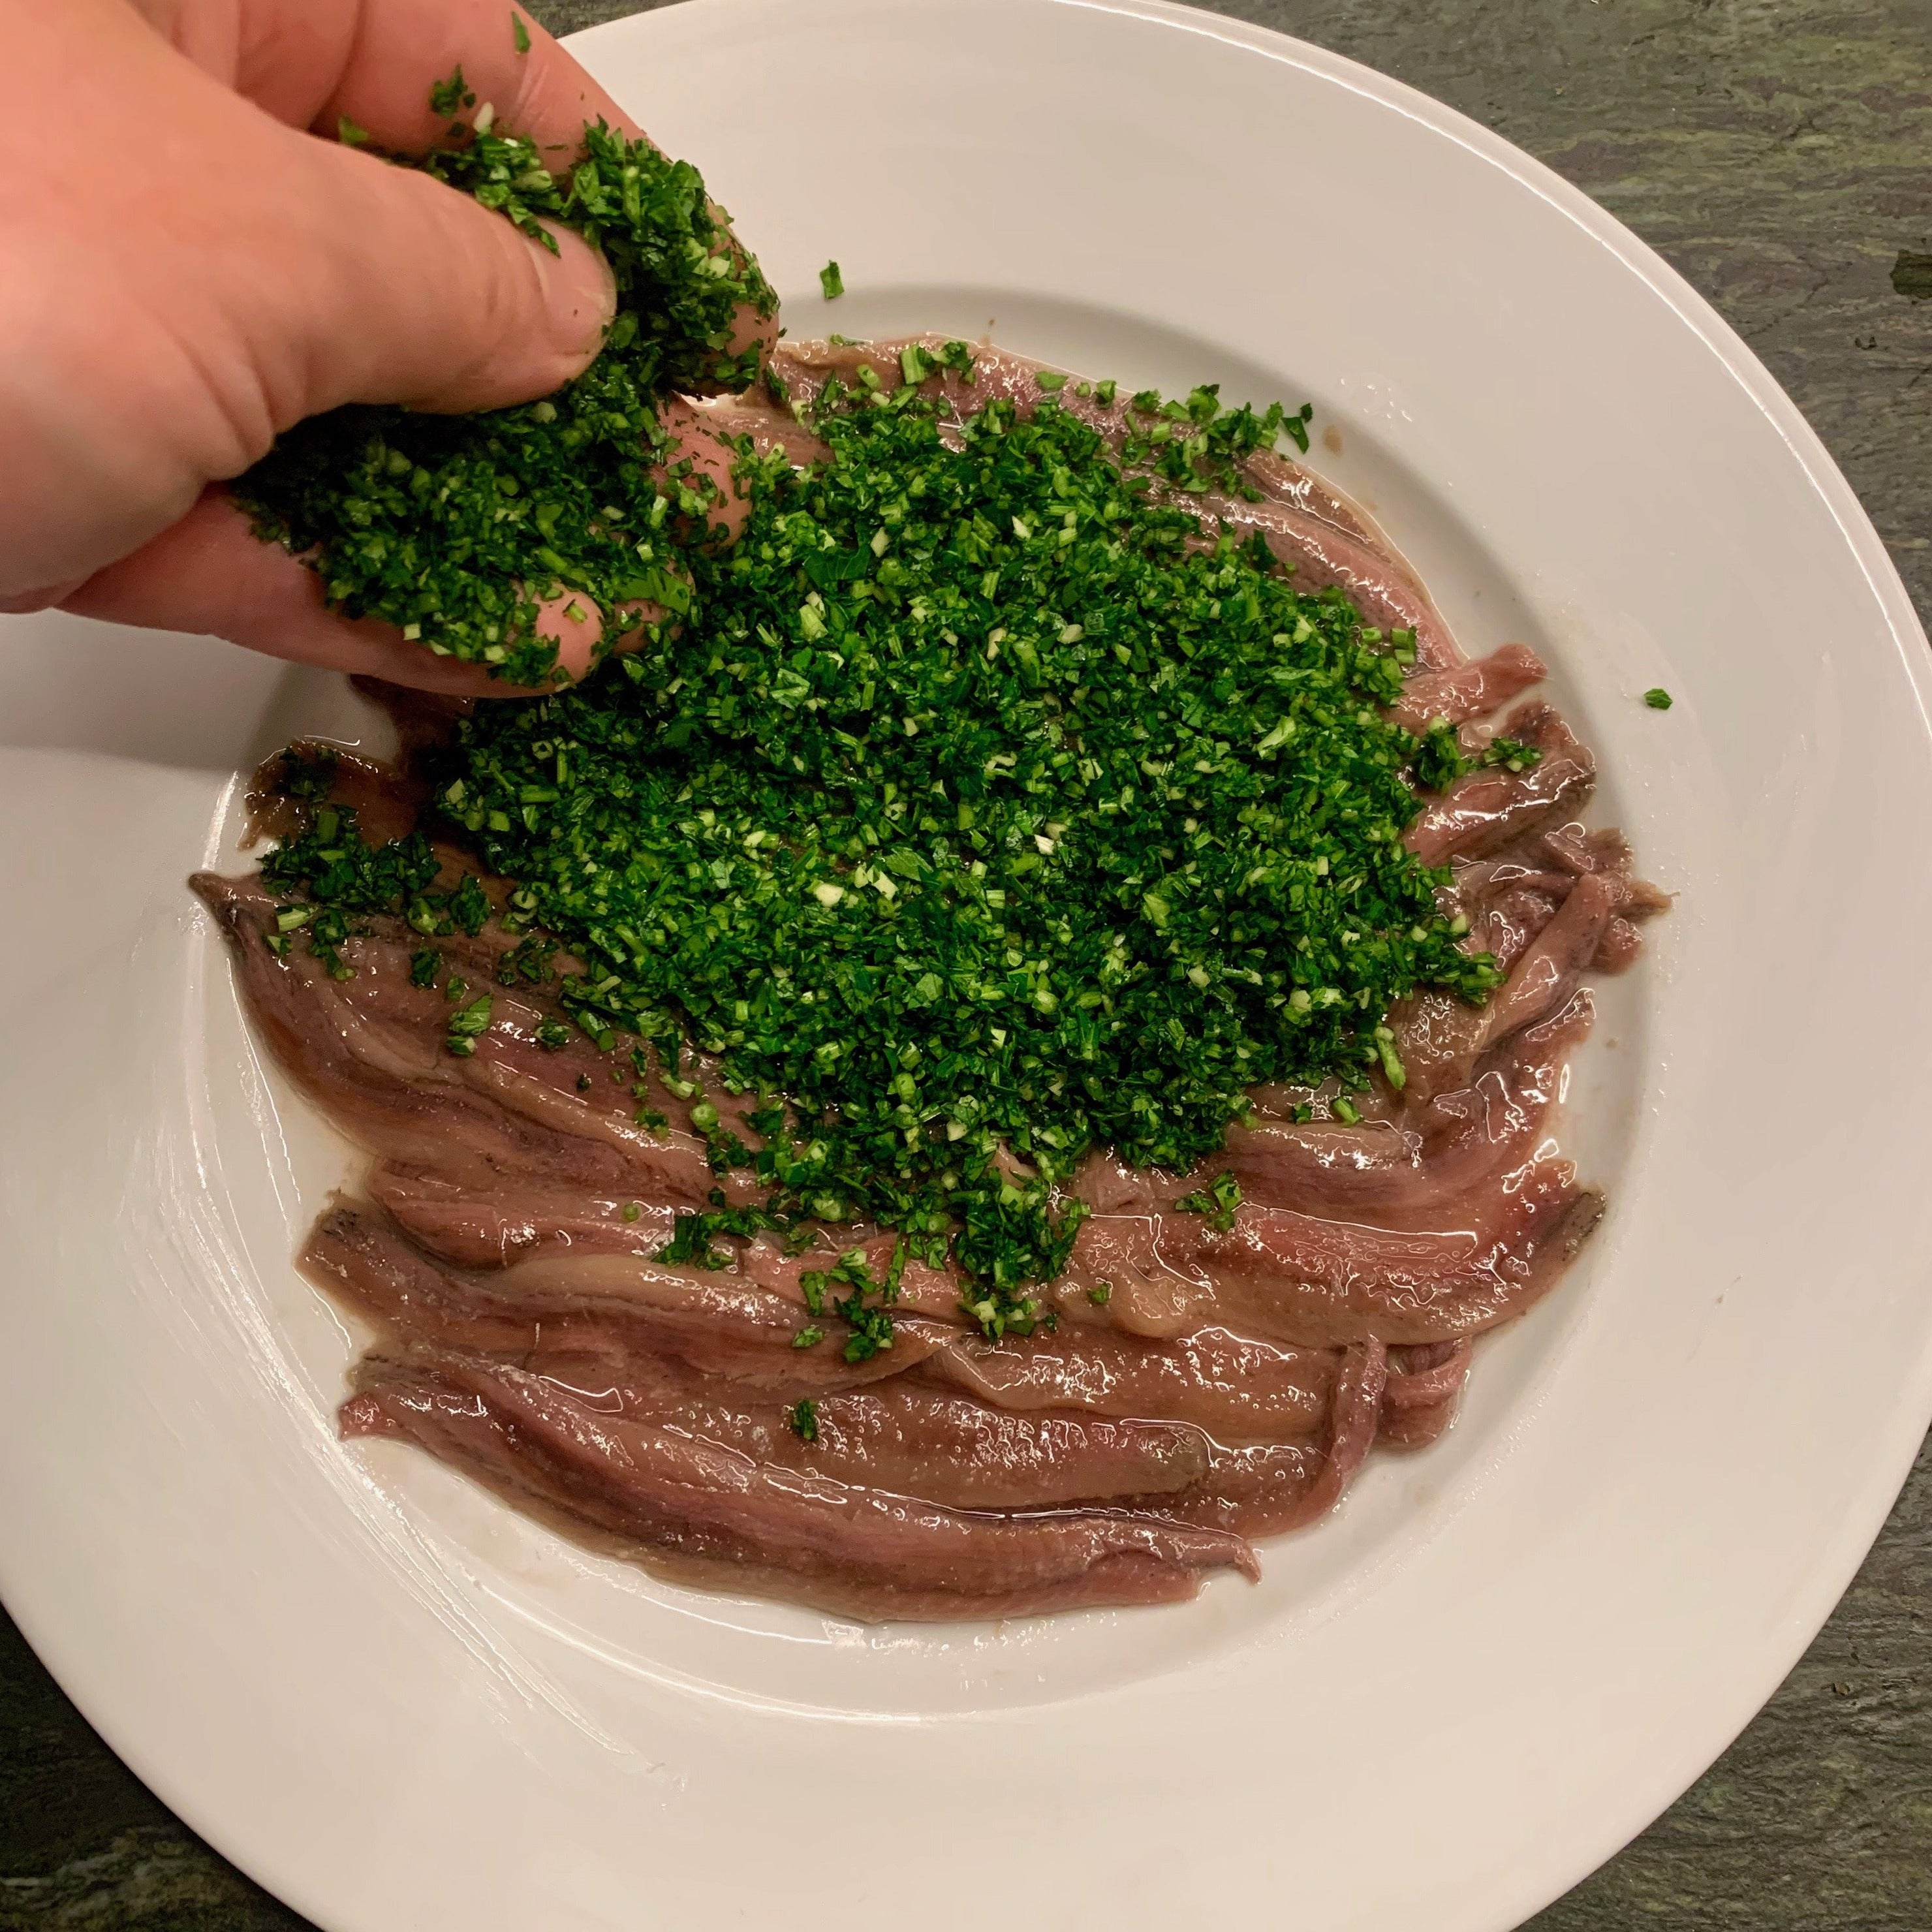 Cantabrian anchovies spread over a white plate with parsley and purple garlic being spread over them